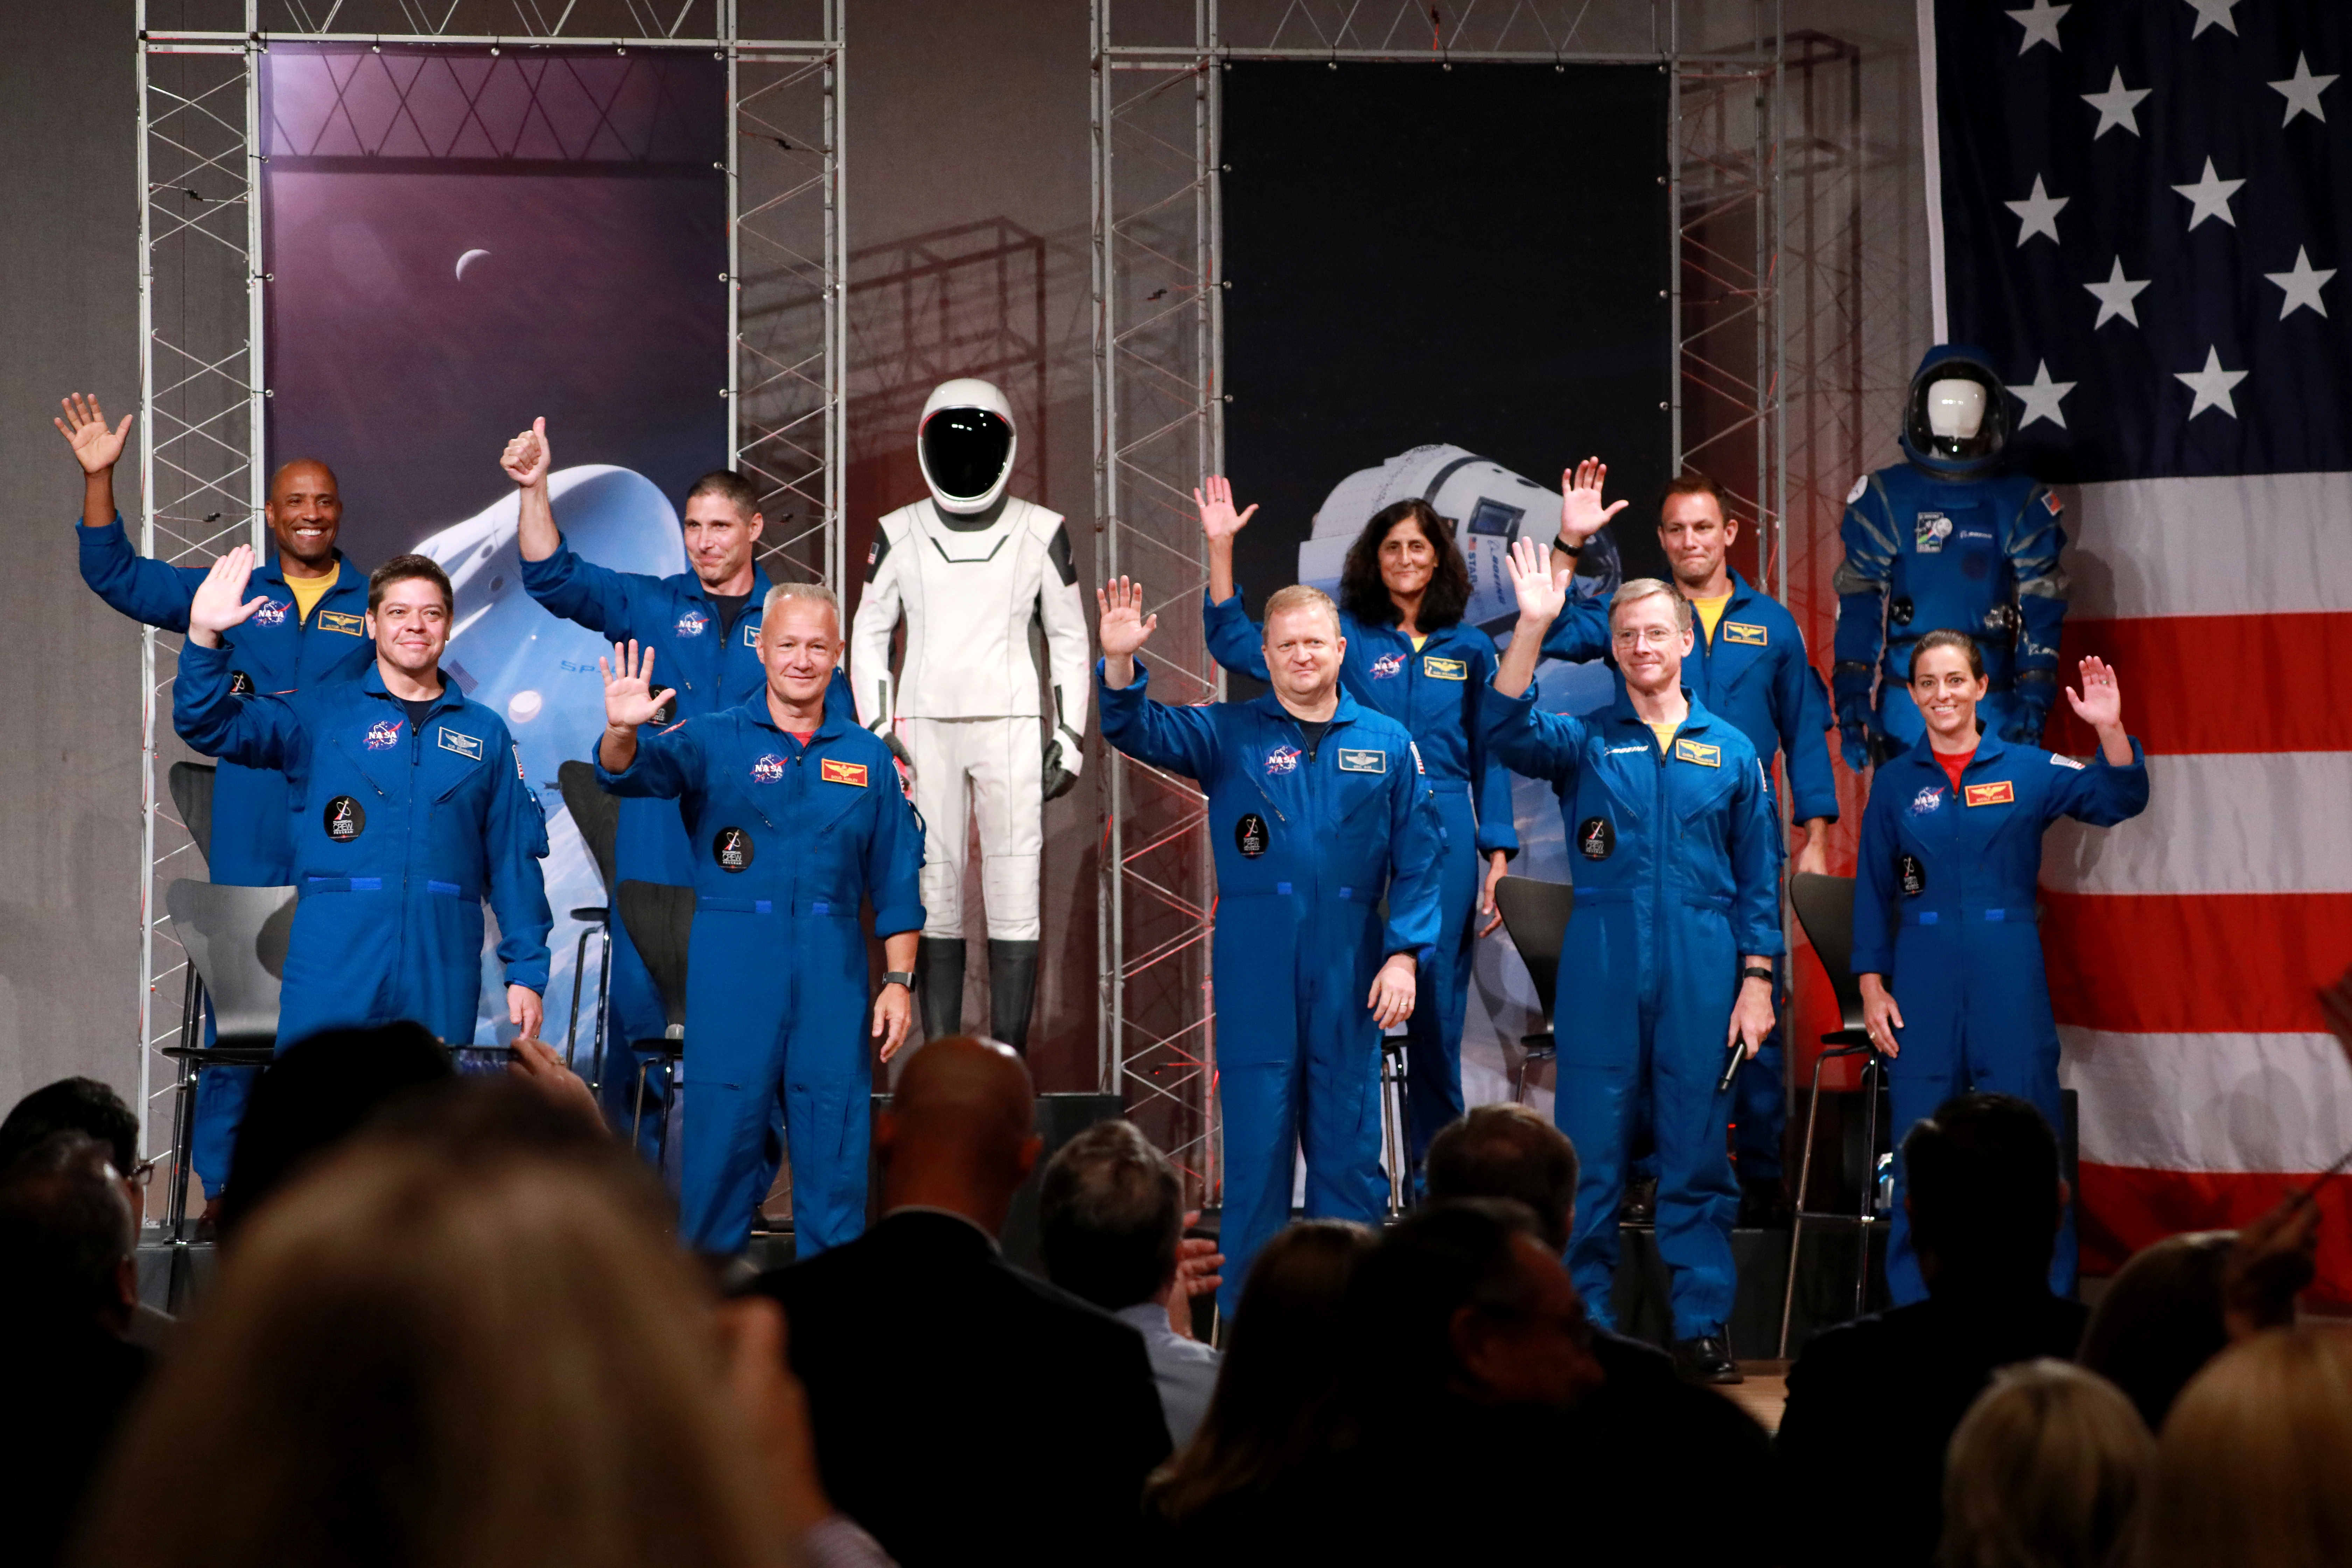 The astronauts assigned to crew the first flight tests and missions of the Boeing CST-100 Starliner and SpaceX Crew Dragon acknowledge the media upon introduction at NASA's Johnson Space Center in Houston, Texas, U.S., August 3, 2018. The astronauts are (L to R): Victor Glover, Robert Behnken, Michael Hopkins, Douglas Hurley, Eric Boe, Sunita Williams, Christopher Ferguson, Josh Cassada, and Nicole Mann. REUTERS/Richard Carson